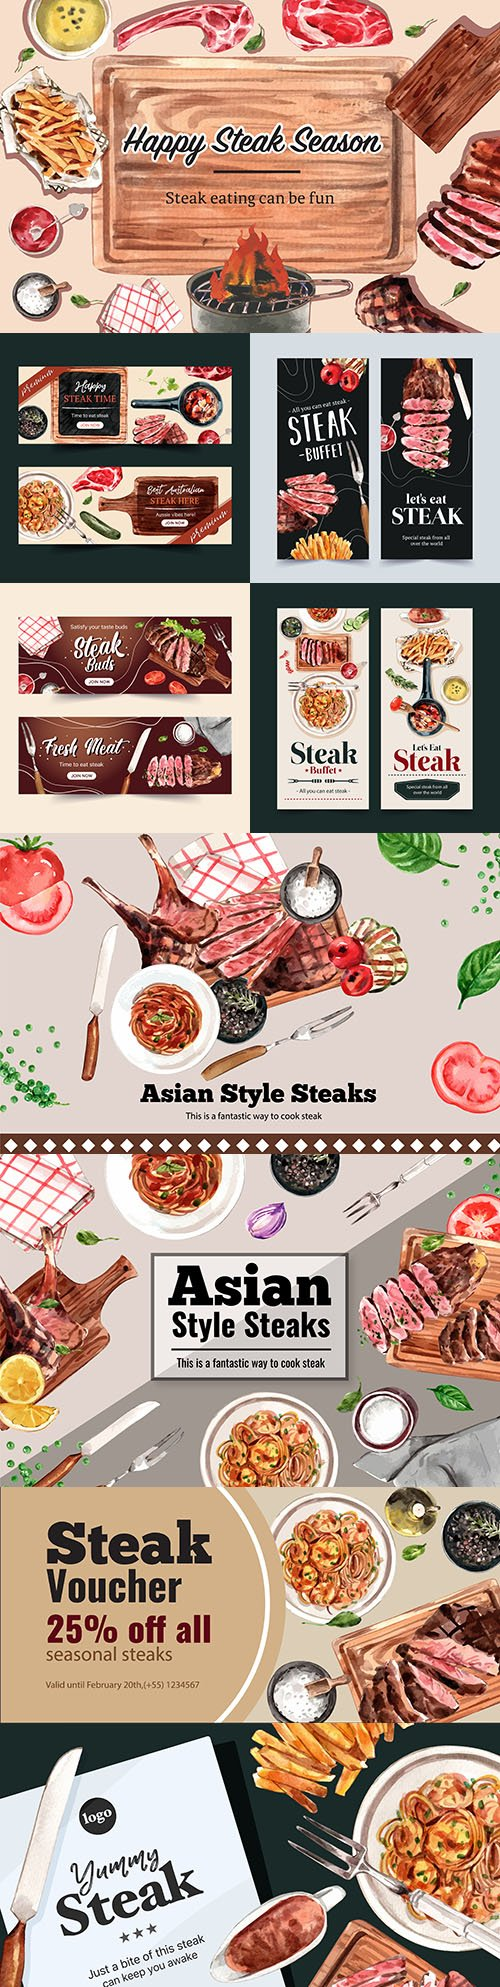 Steak banner design with fried meat, spaghetti watercolor illustrations